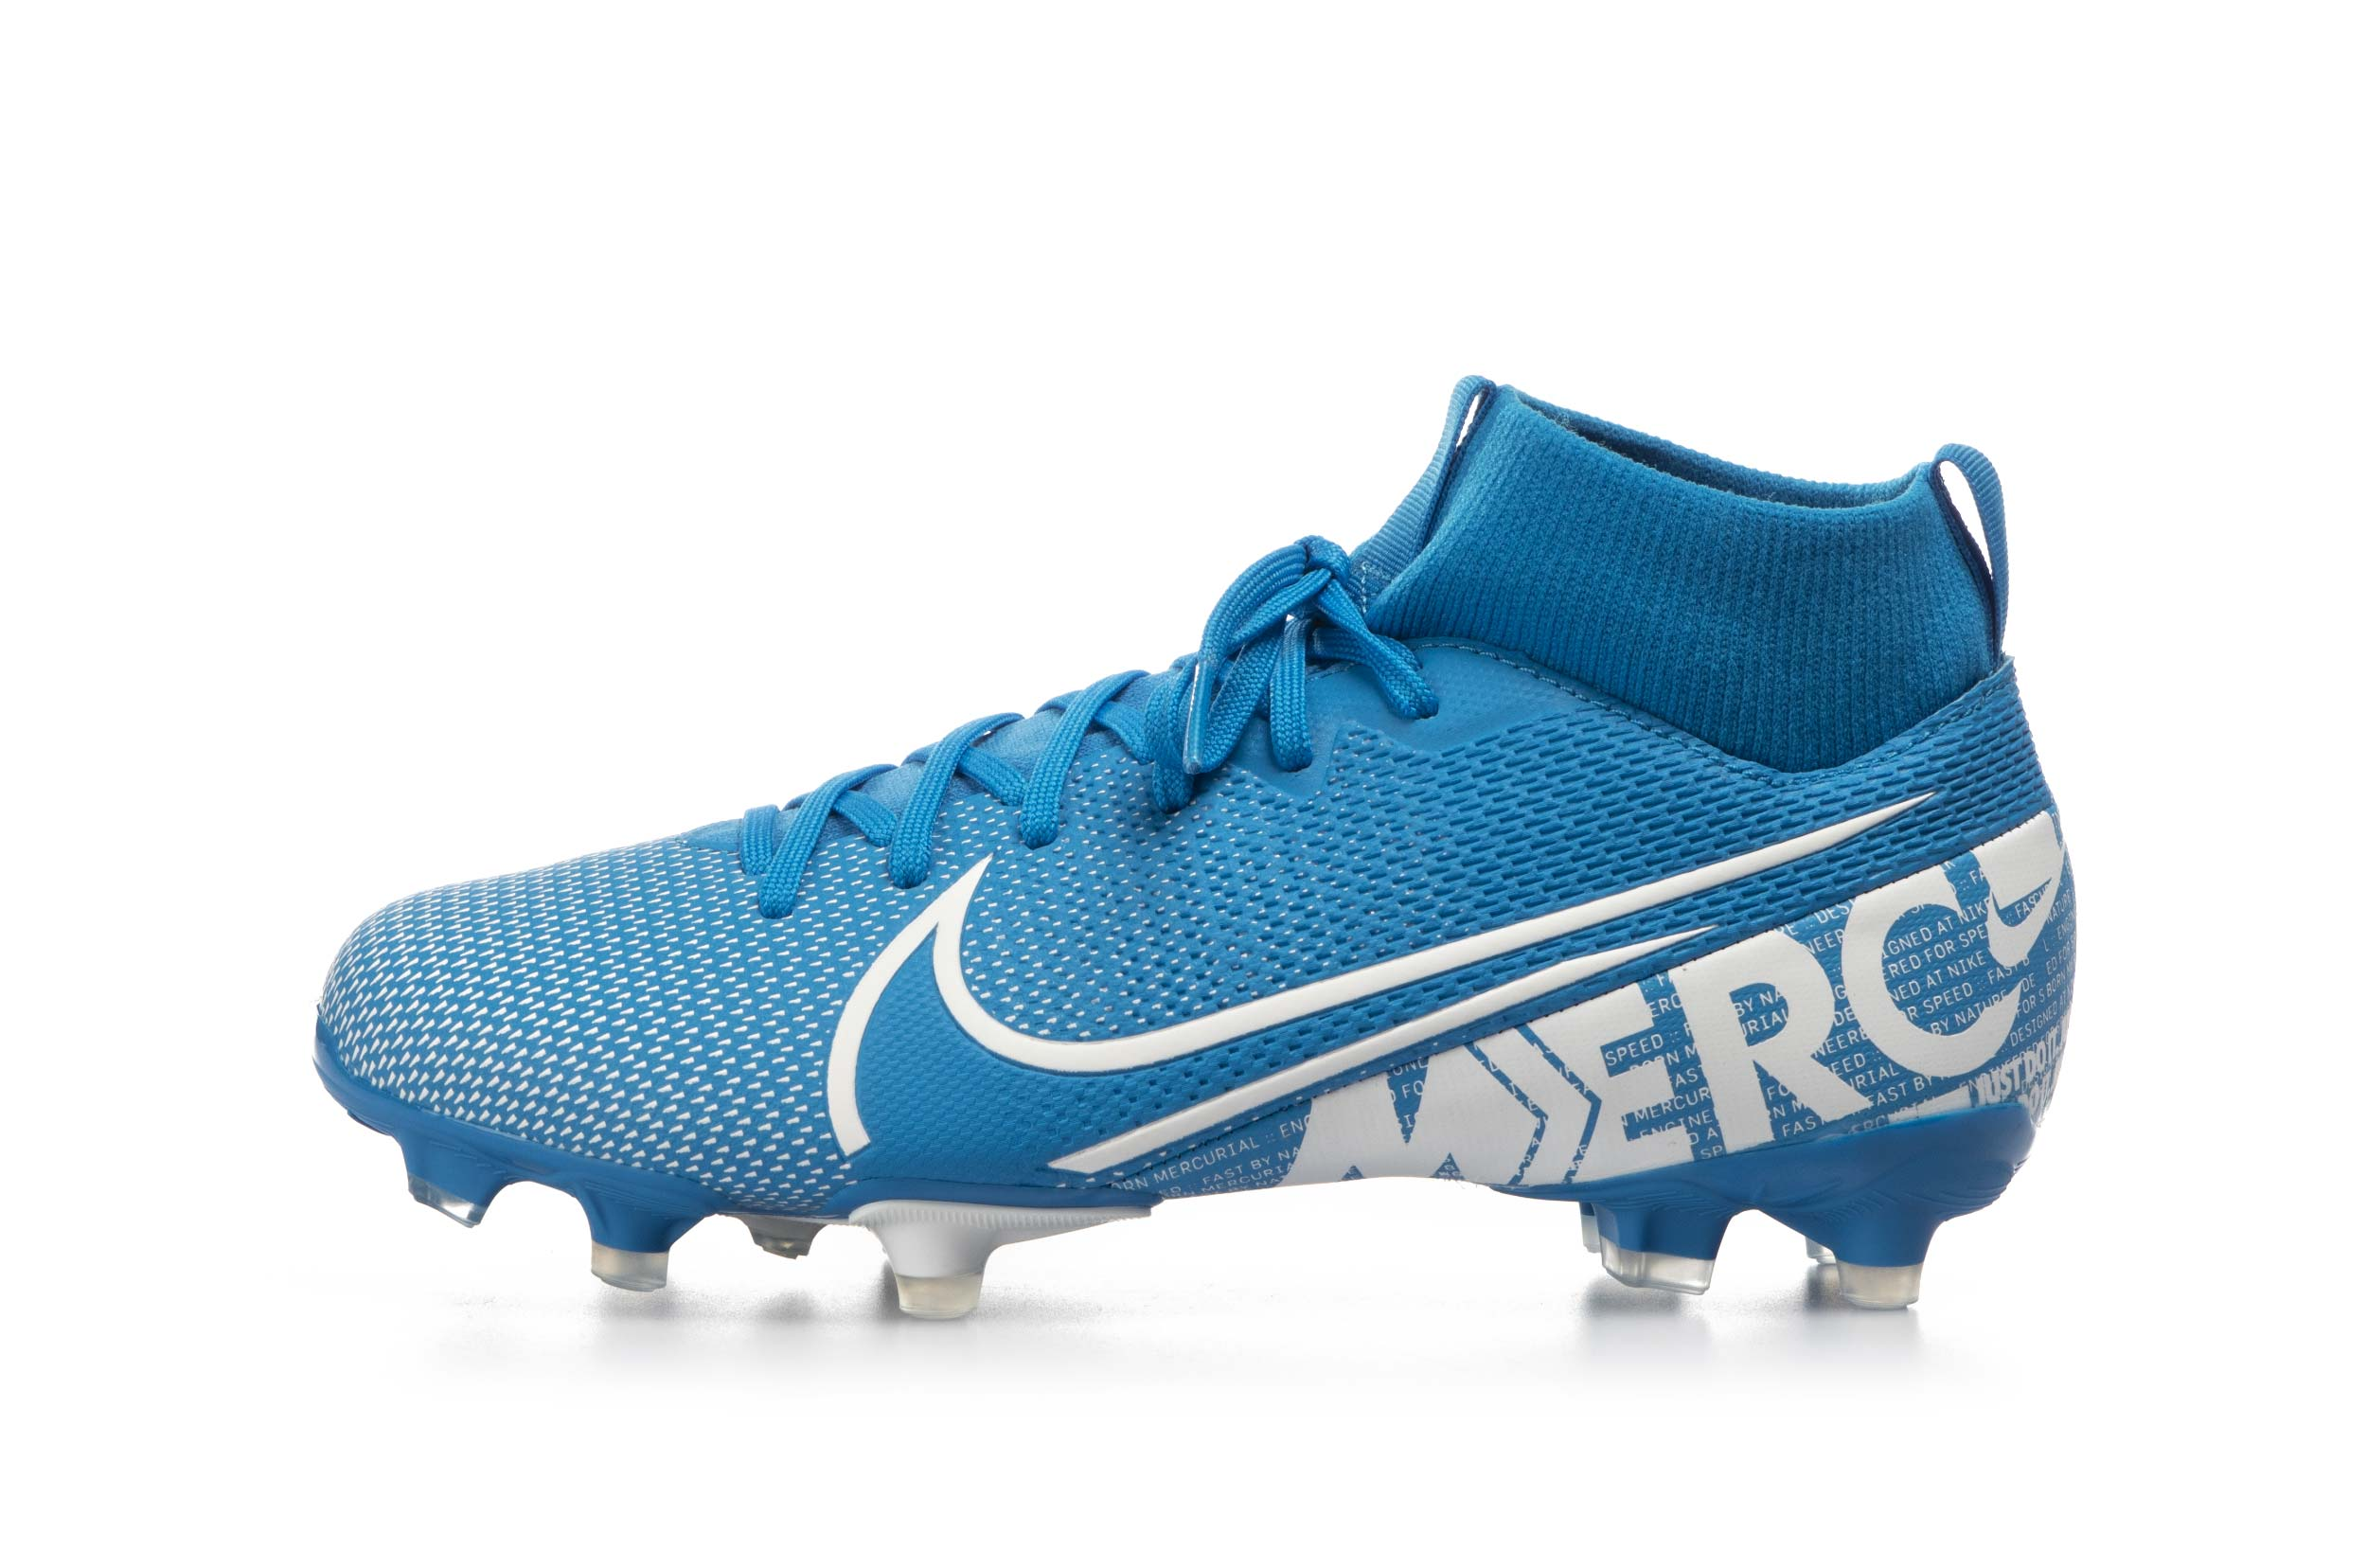 NIKE JR. MERCURIAL SUPERFLY 7 ACADEMY MG AT8120-414 Μπλε